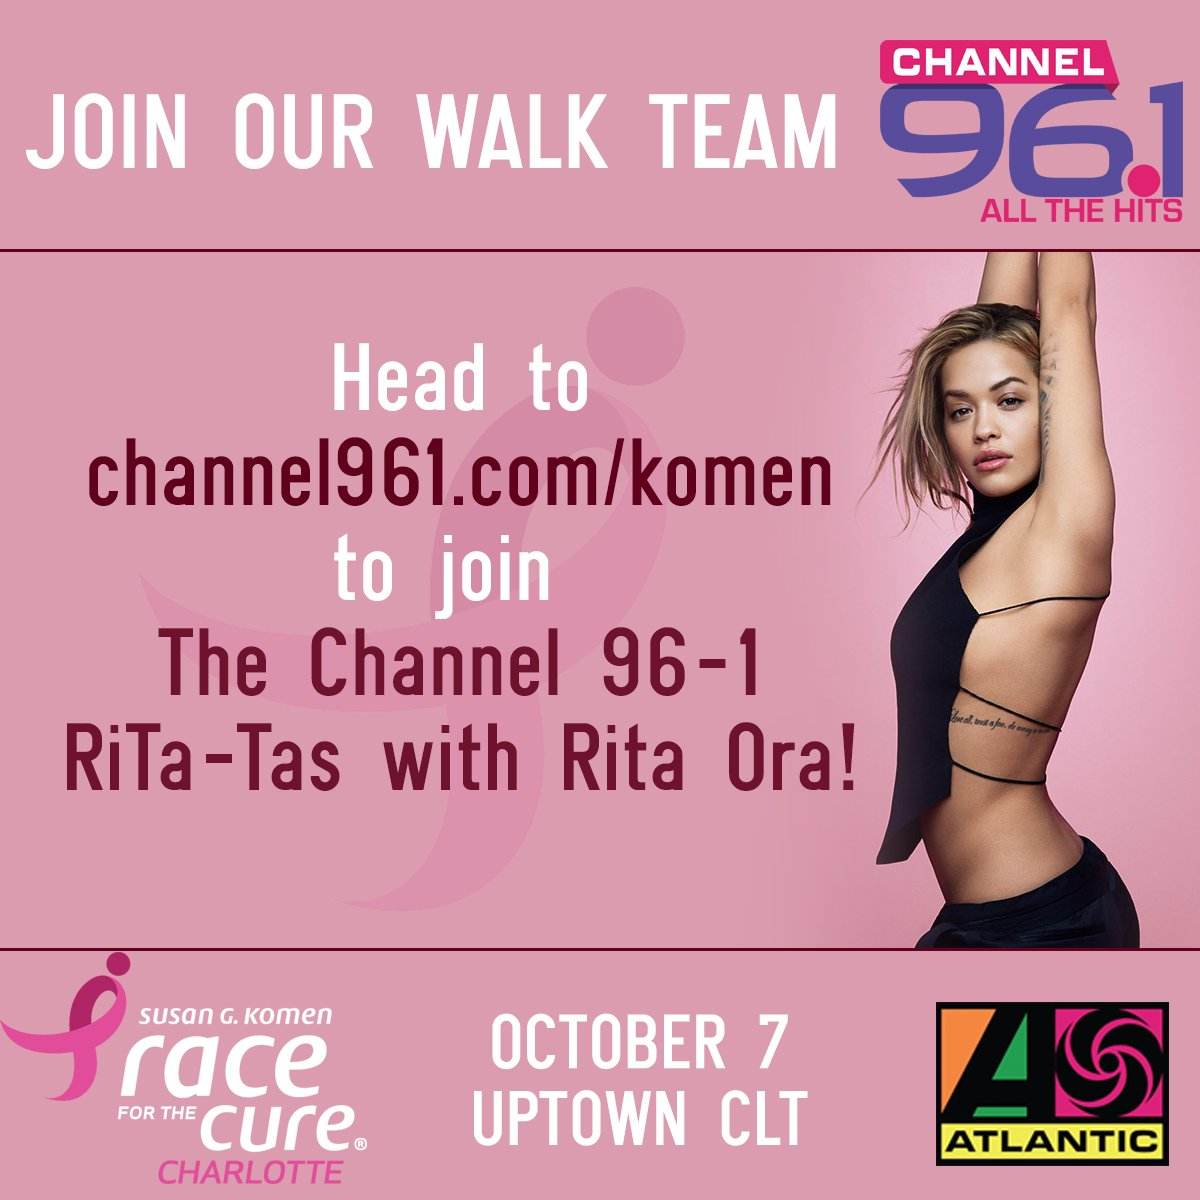 Join @channel961 and me in CHARLOTTE!!!! I'm walking with you on October 7 in support of Race for the Cure!!! https://t.co/zTJQdvGKOb